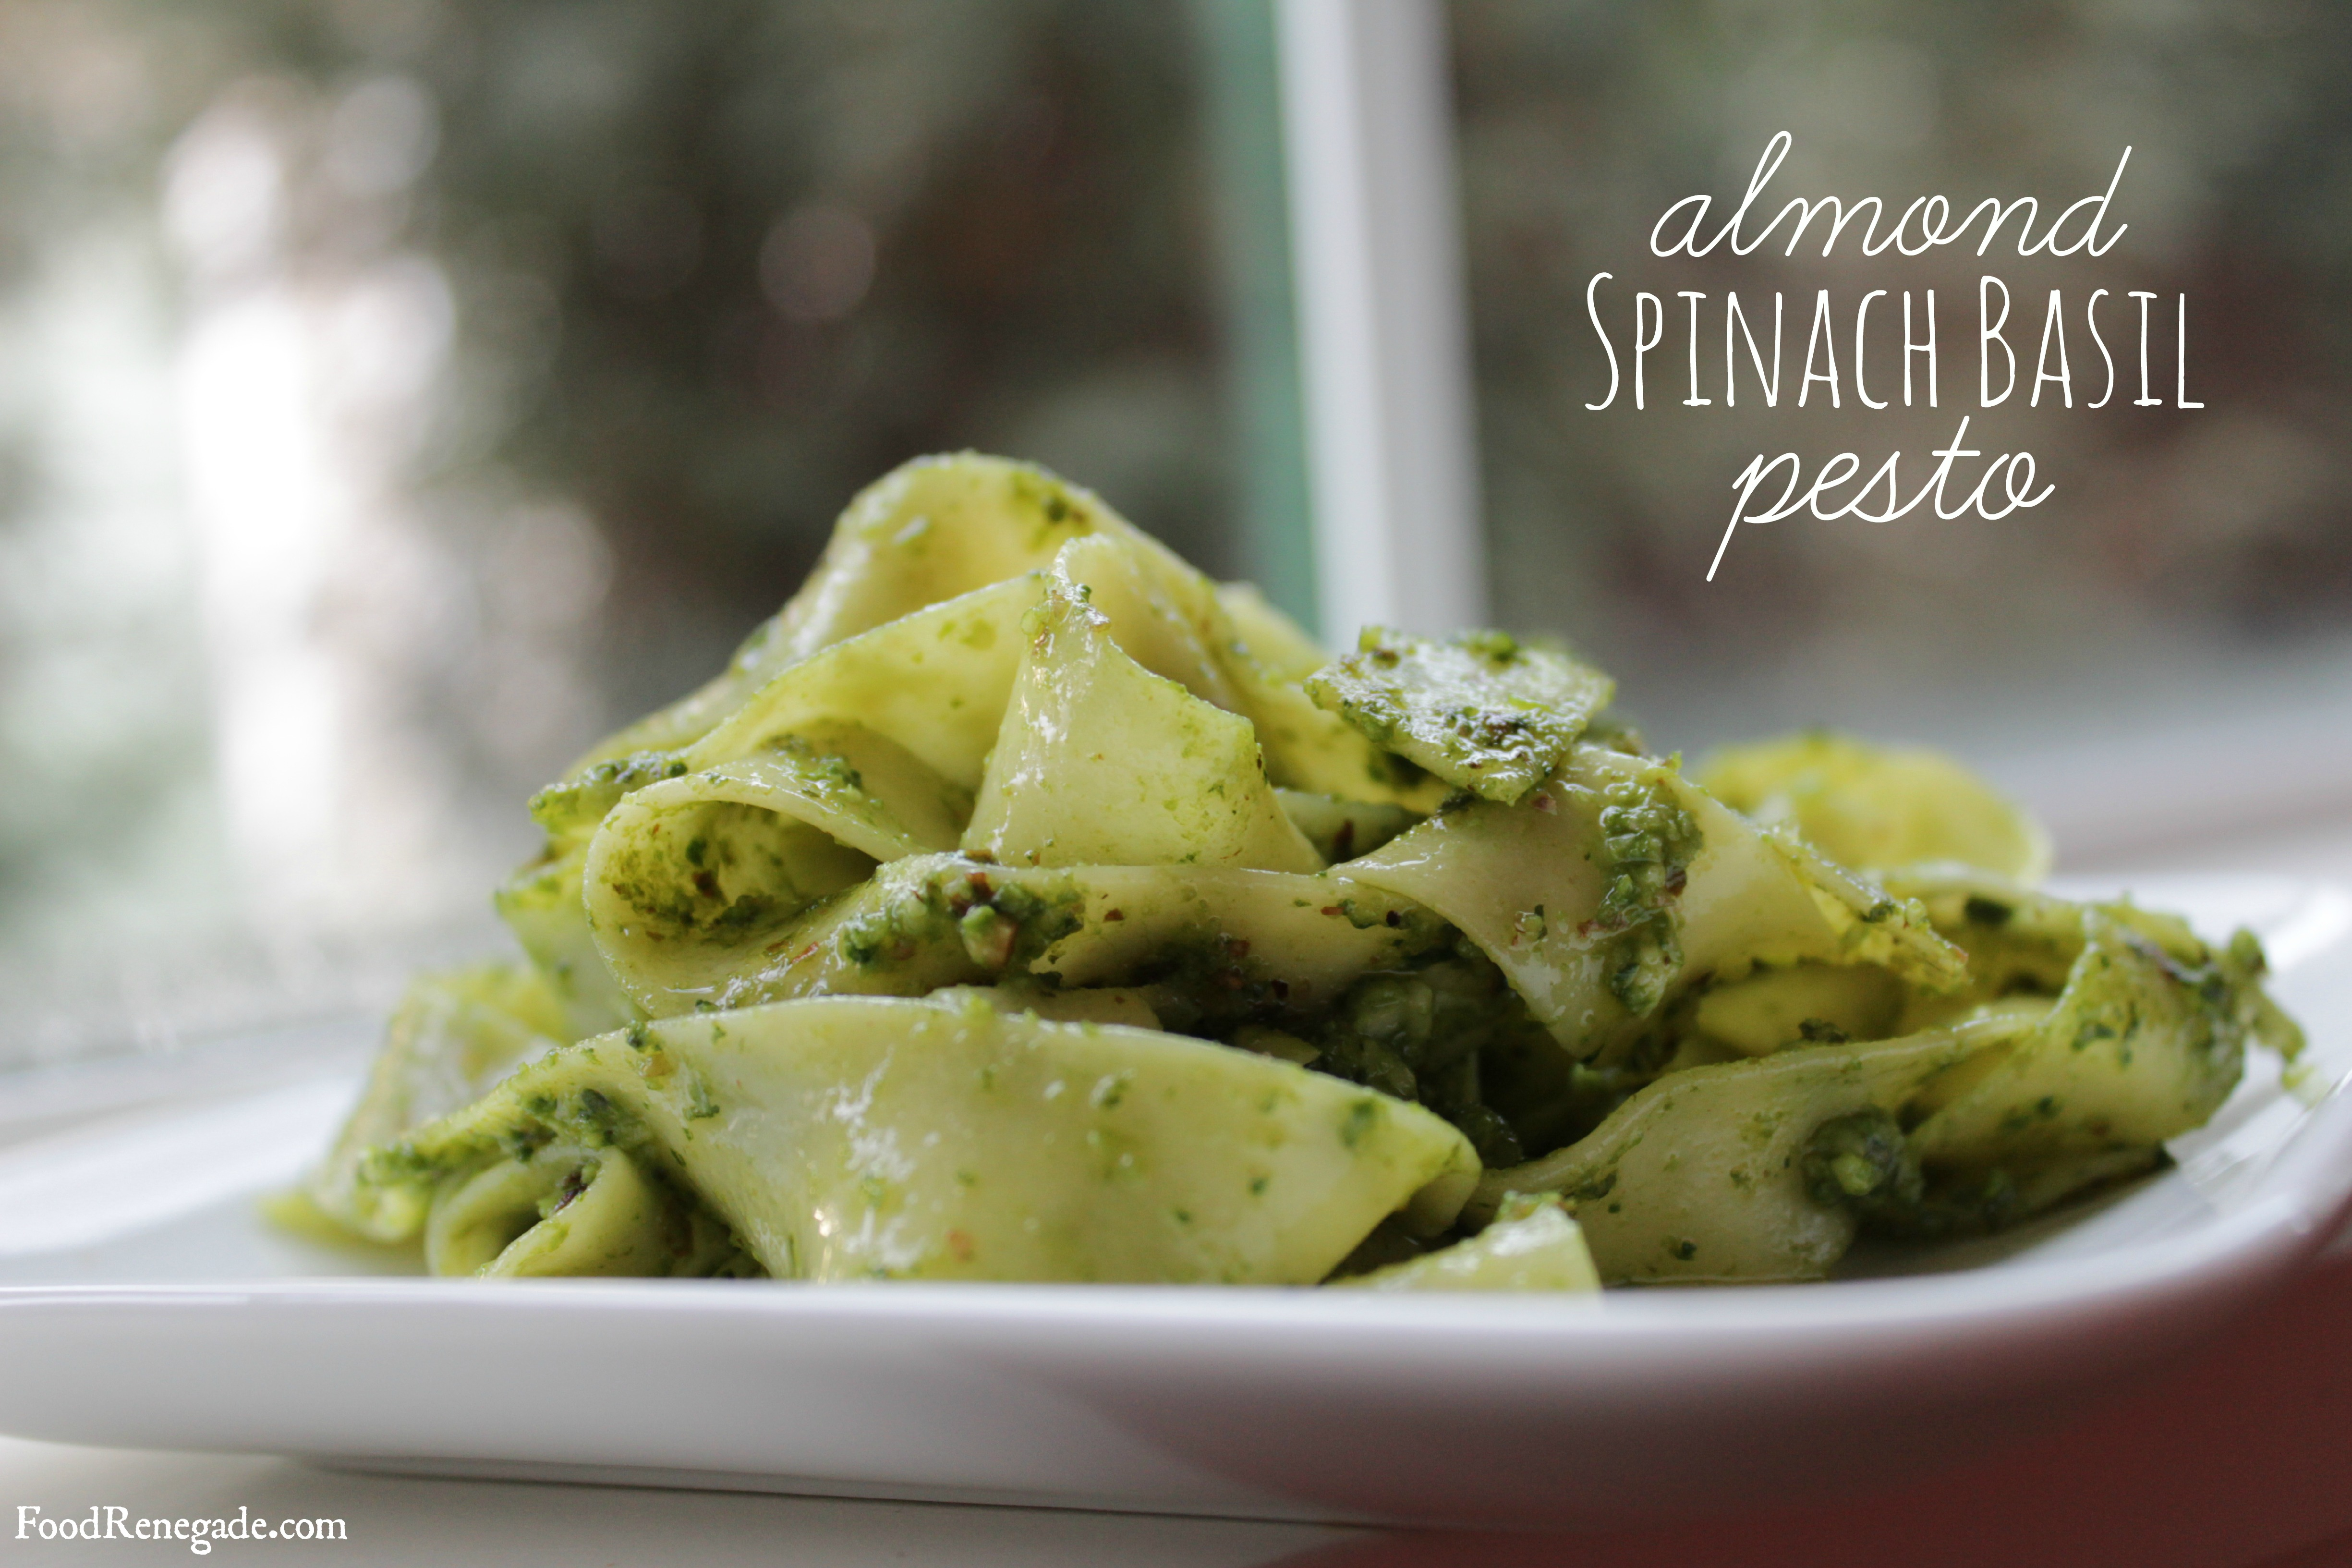 http://www.foodrenegade.com/wp-content/uploads/2014/01/Almond-Spinach-Basil-Pesto-Pin.jpg